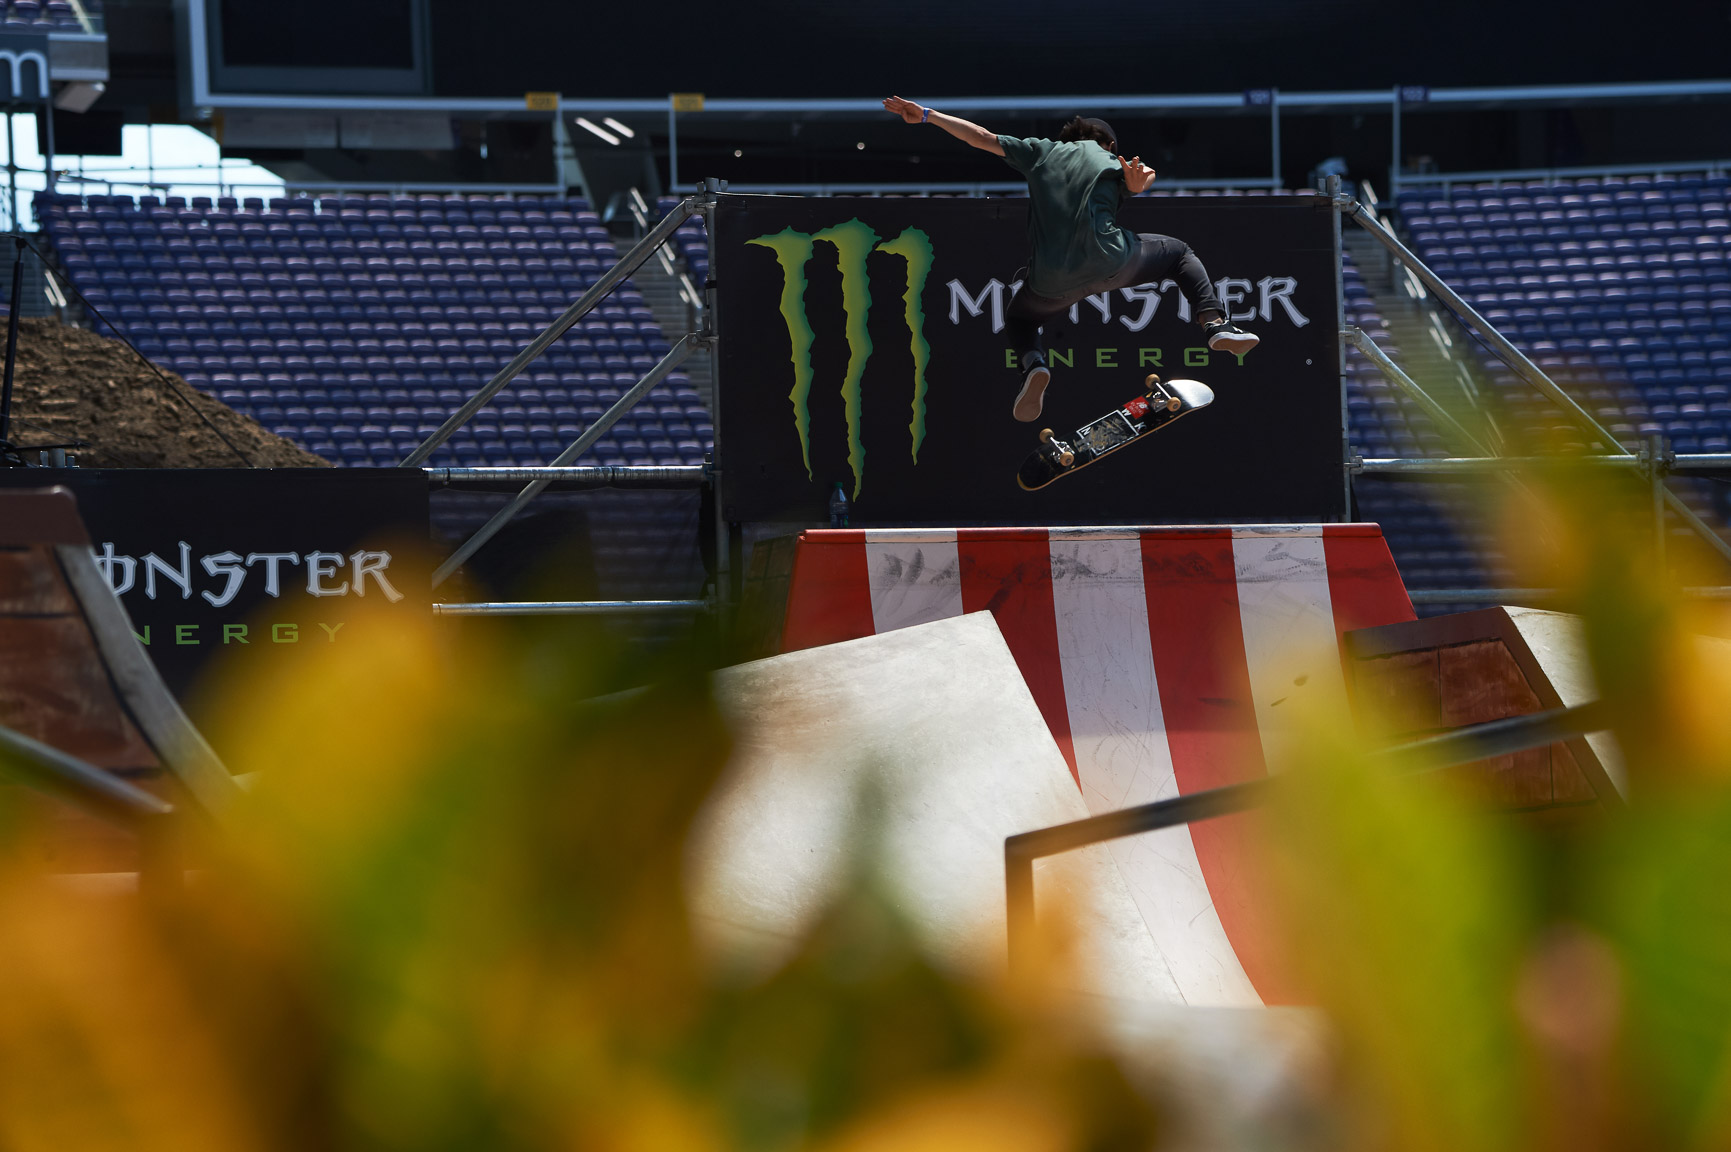 Women's Skateboard Street competitor Alexis Sablone arrived early at X Games Minneapolis 2017 to practice and figure out her lines. Kickflipping gaps came naturally to the seasoned competitor, who holds five X Games Skateboard Street medals, three of them gold.